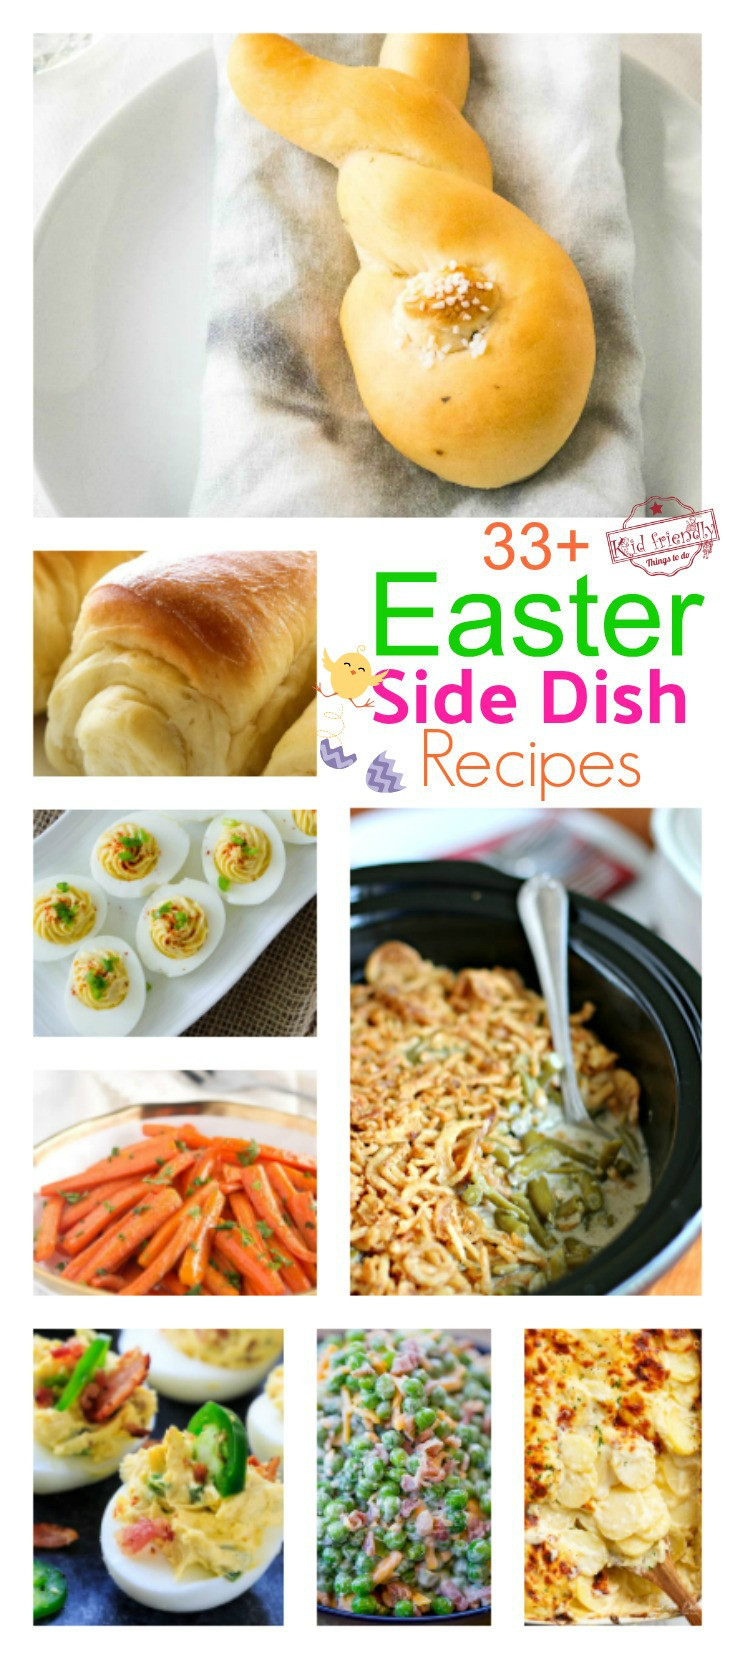 Easy Easter Side Dishes  Over 33 Easter Side Dish Recipes for Your Celebration Dinner